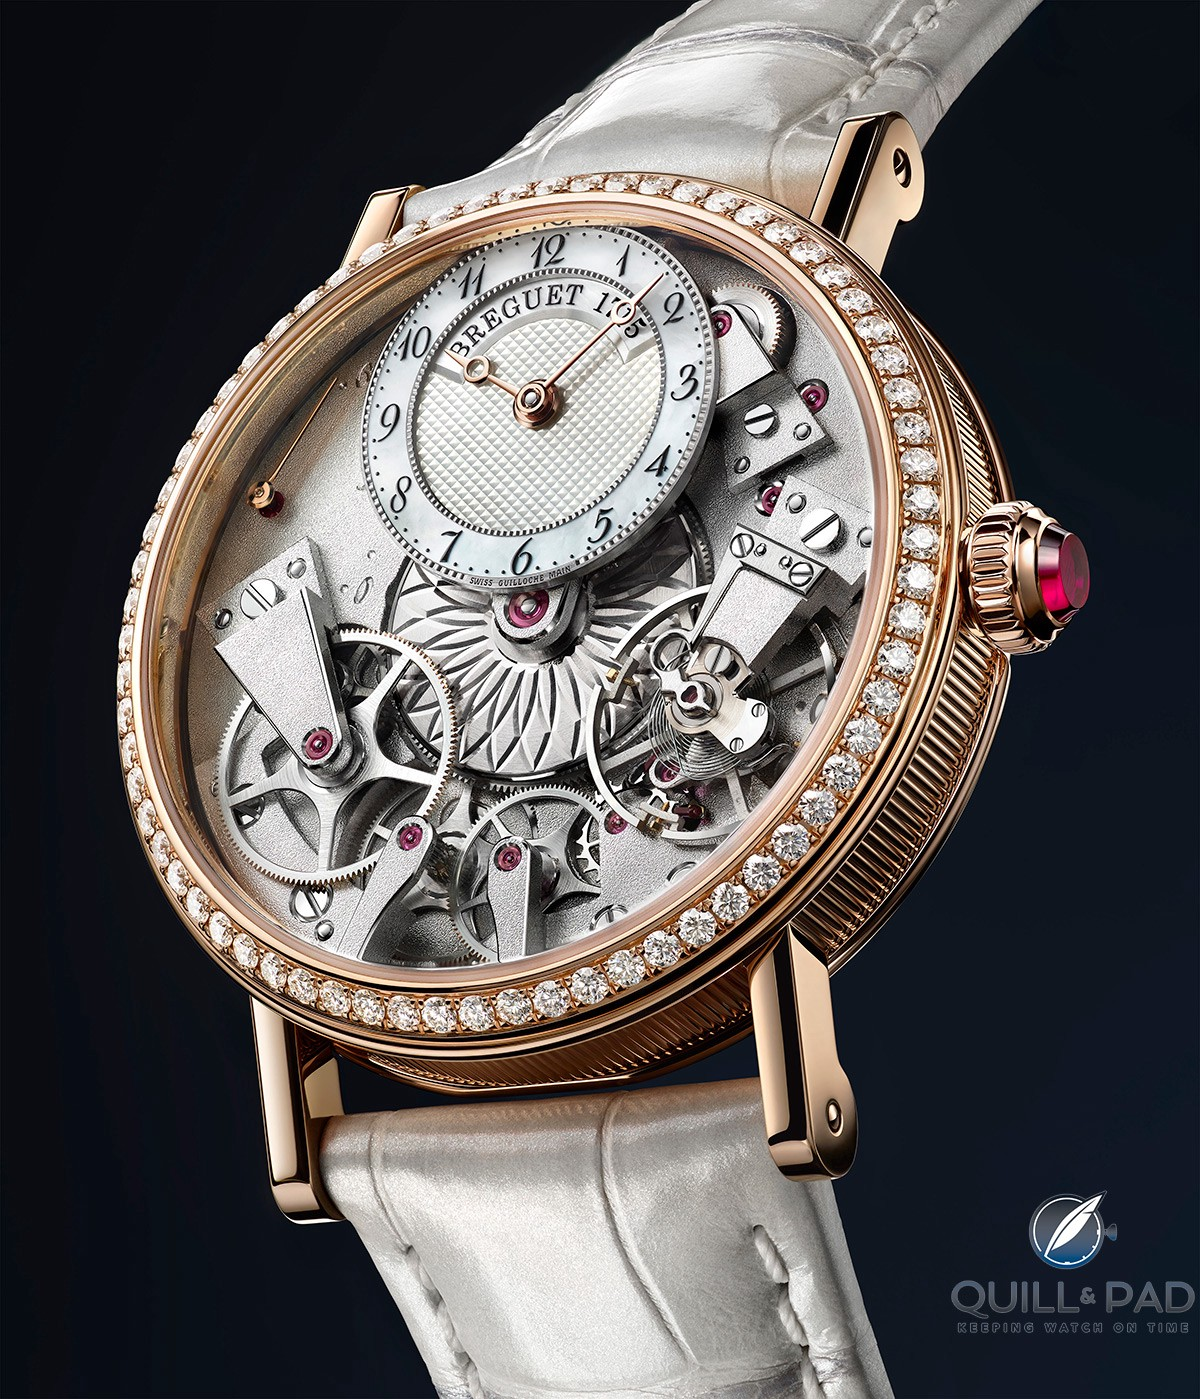 Breguet Tradition Dame Reference 7038